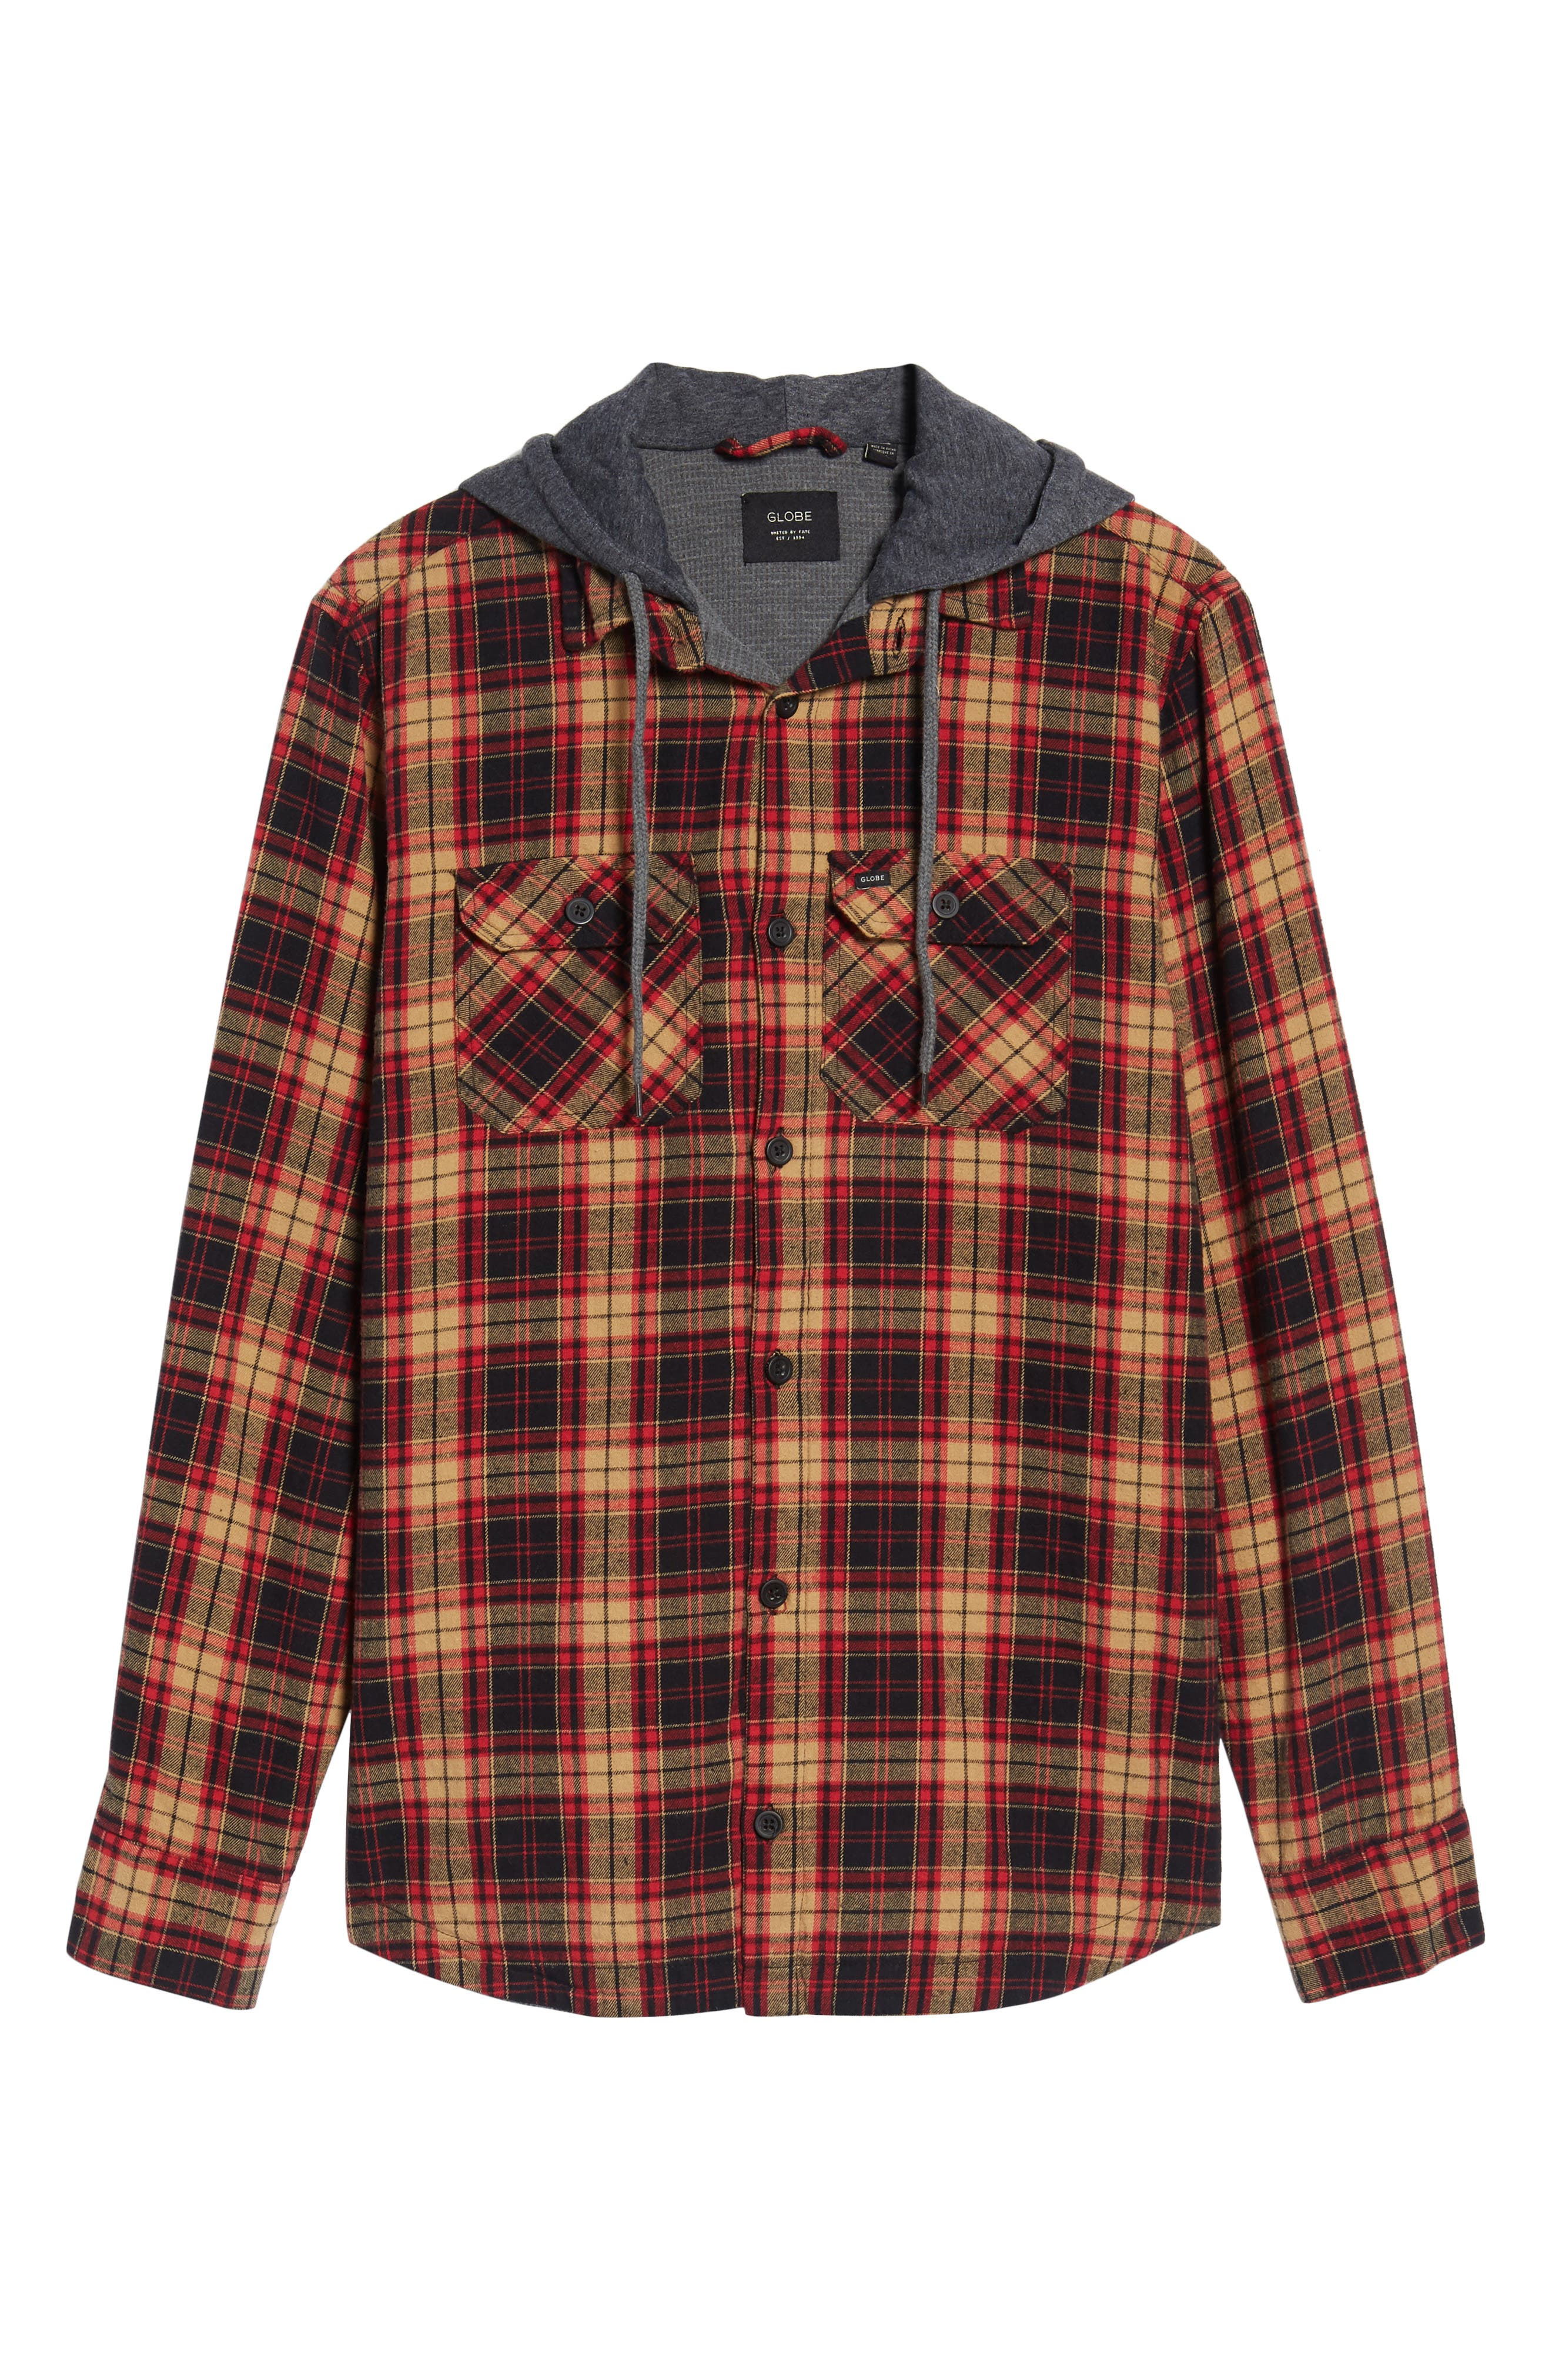 'Alford' Trim Fit Long Sleeve Plaid Hooded Shirt,                             Alternate thumbnail 6, color,                             Tobacco